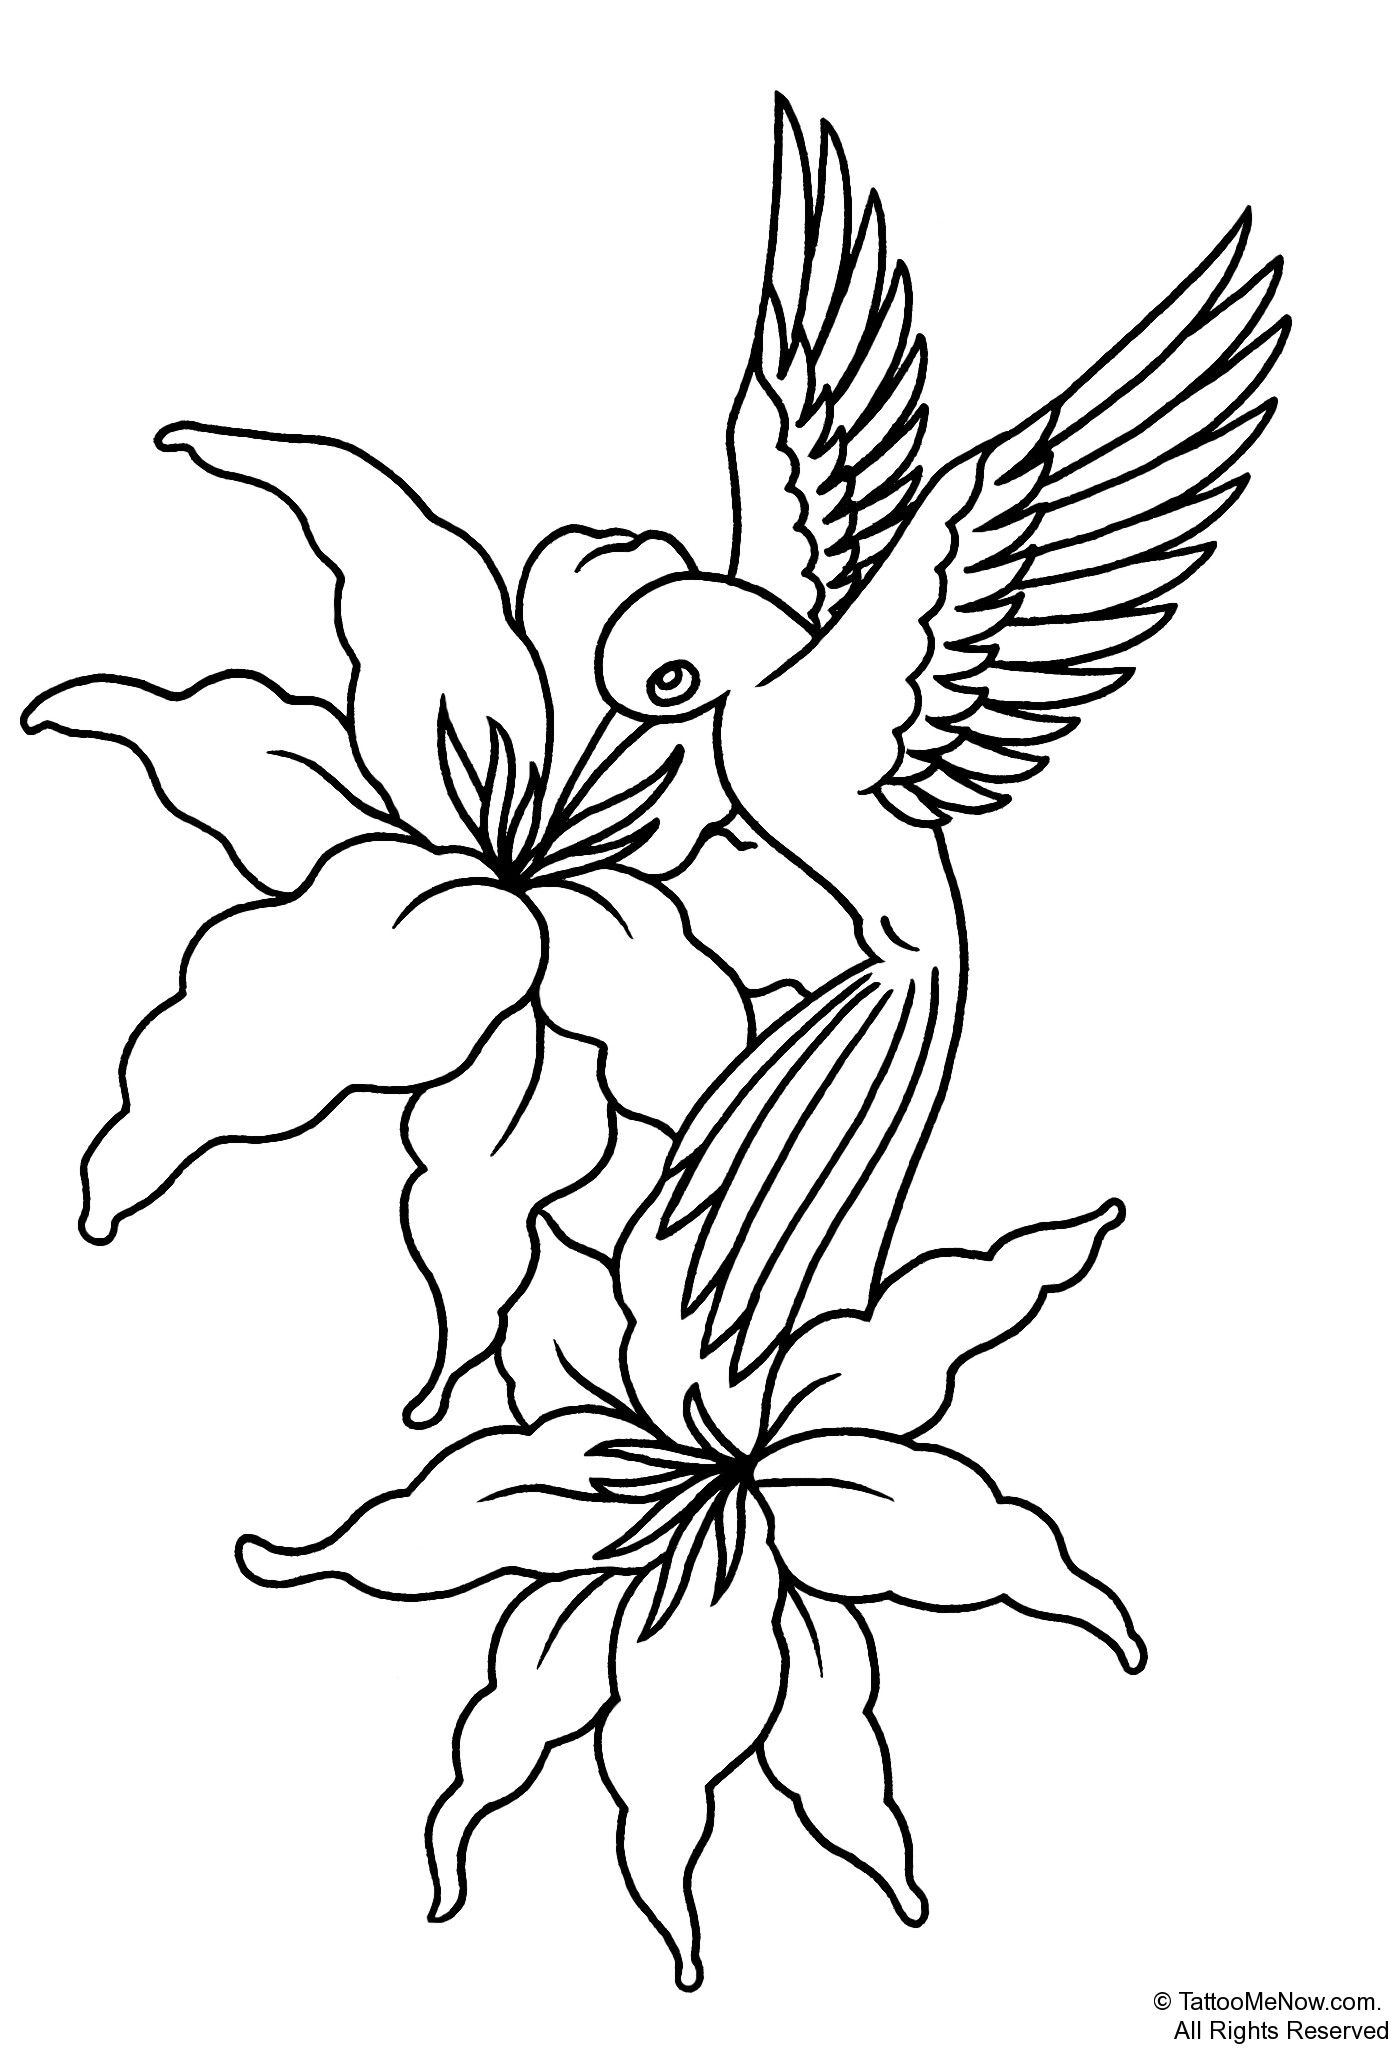 image regarding Free Printable Tattoo Designs named Cost-free Printable Tattoo Stencils Your Free of charge tattoo ideas